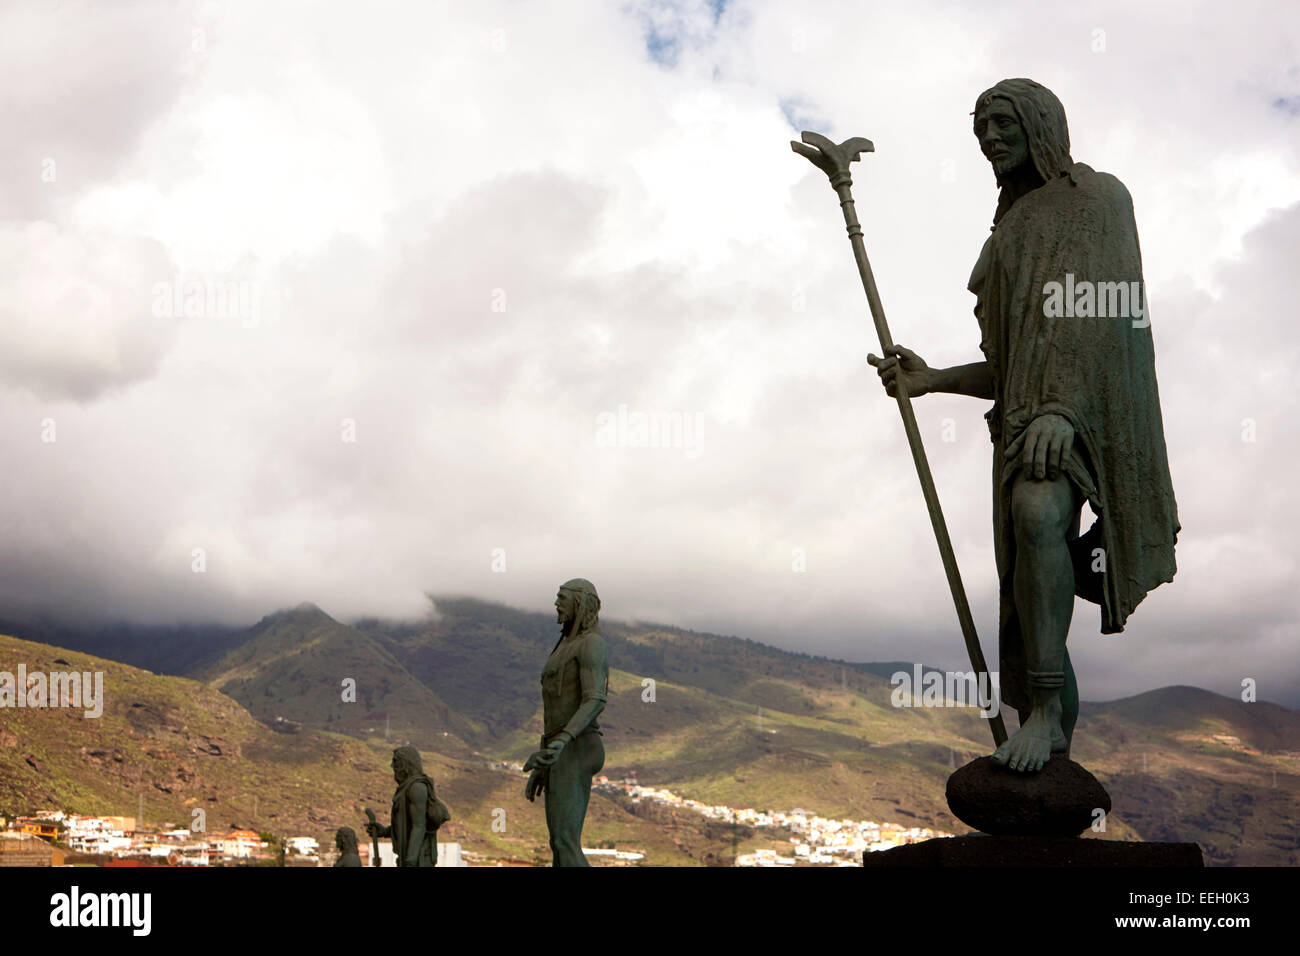 statues of the guanche chiefs with king mencey Tegueste in Candelaria the original inhabitants of tenerife canary - Stock Image